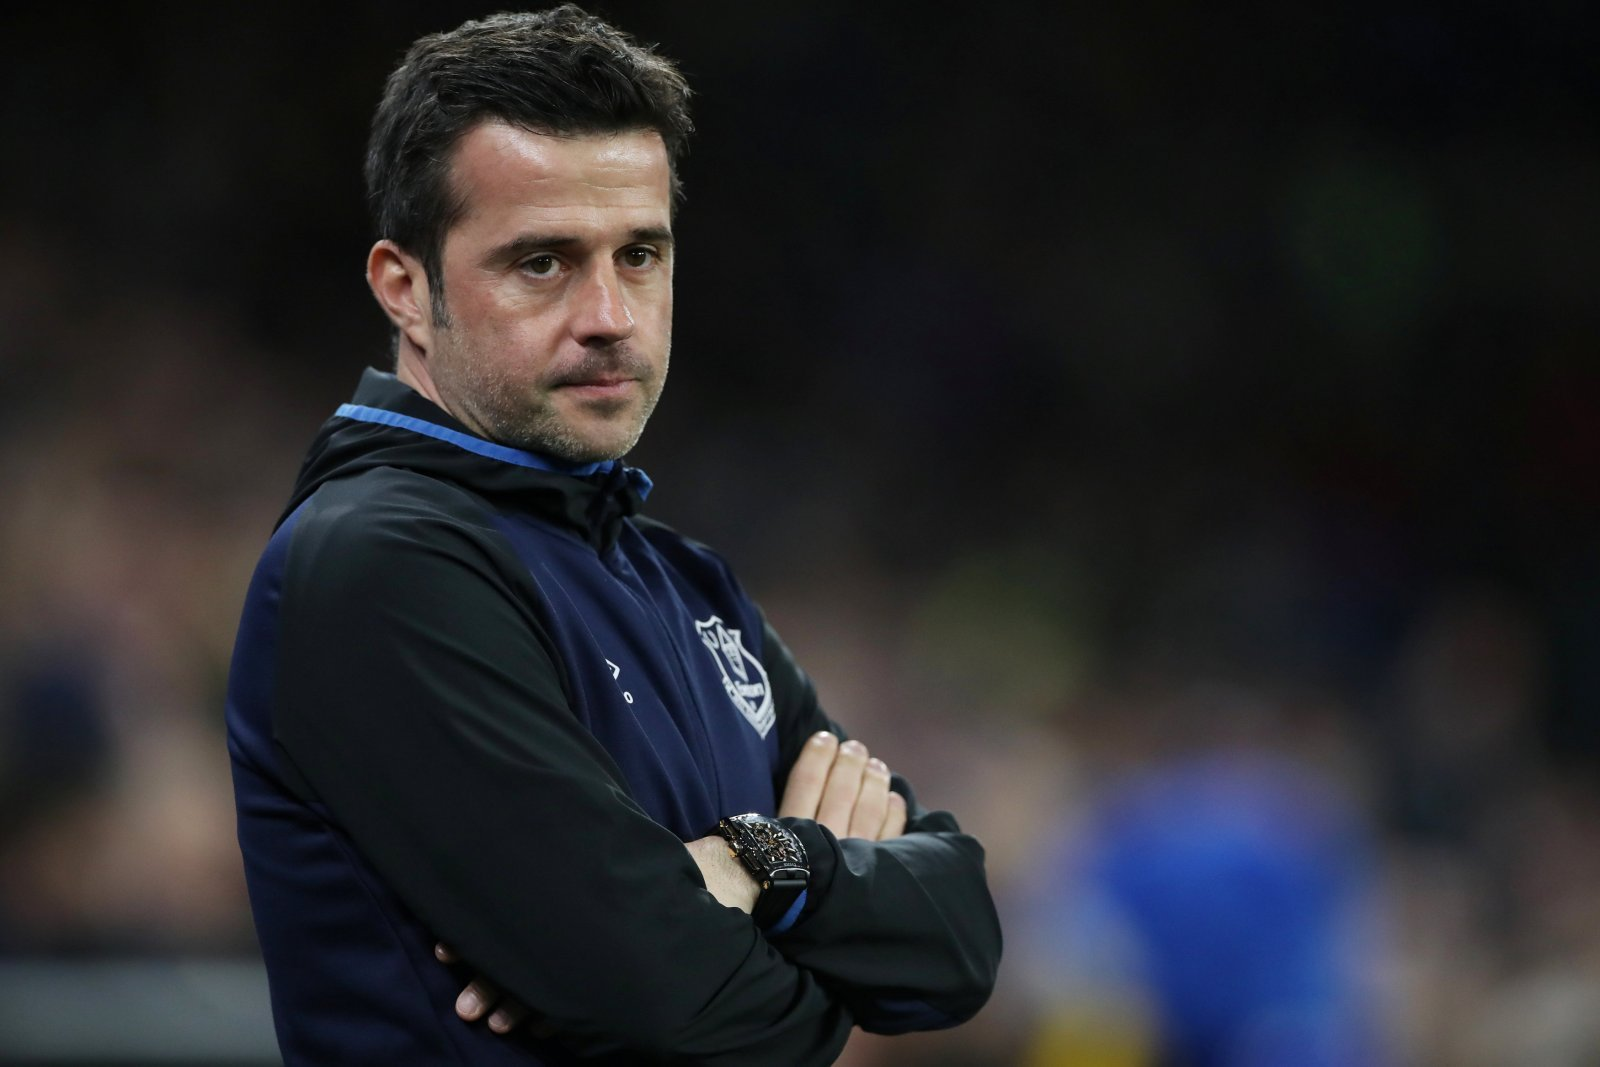 Opinion: Promising few weeks shows Silva is the man for Everton heading into 19/20 season